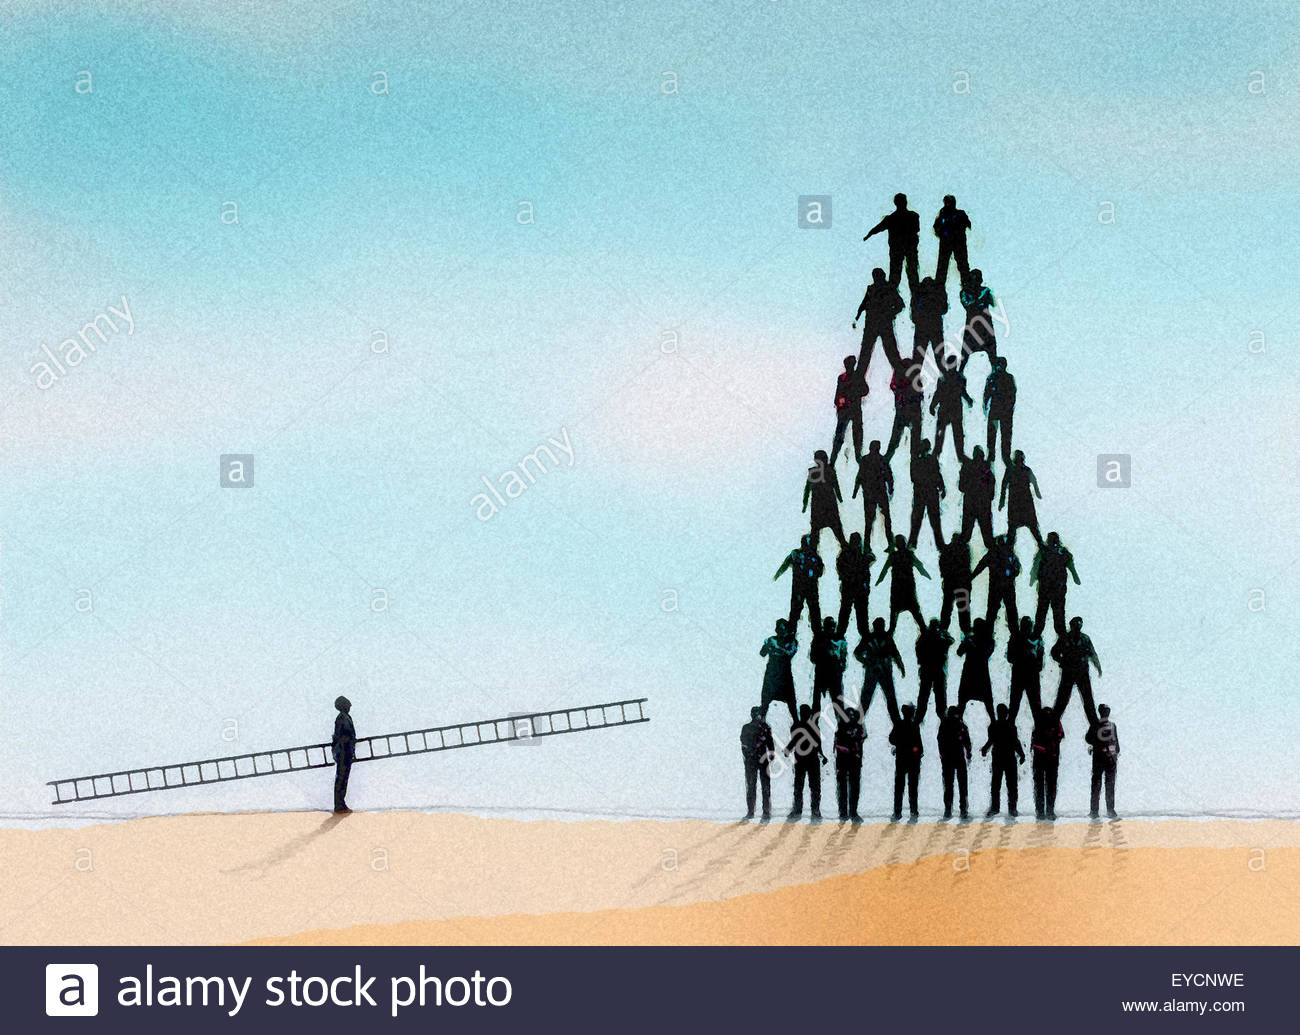 Man carrying tall ladder looking up to the top of a human pyramid - Stock Image